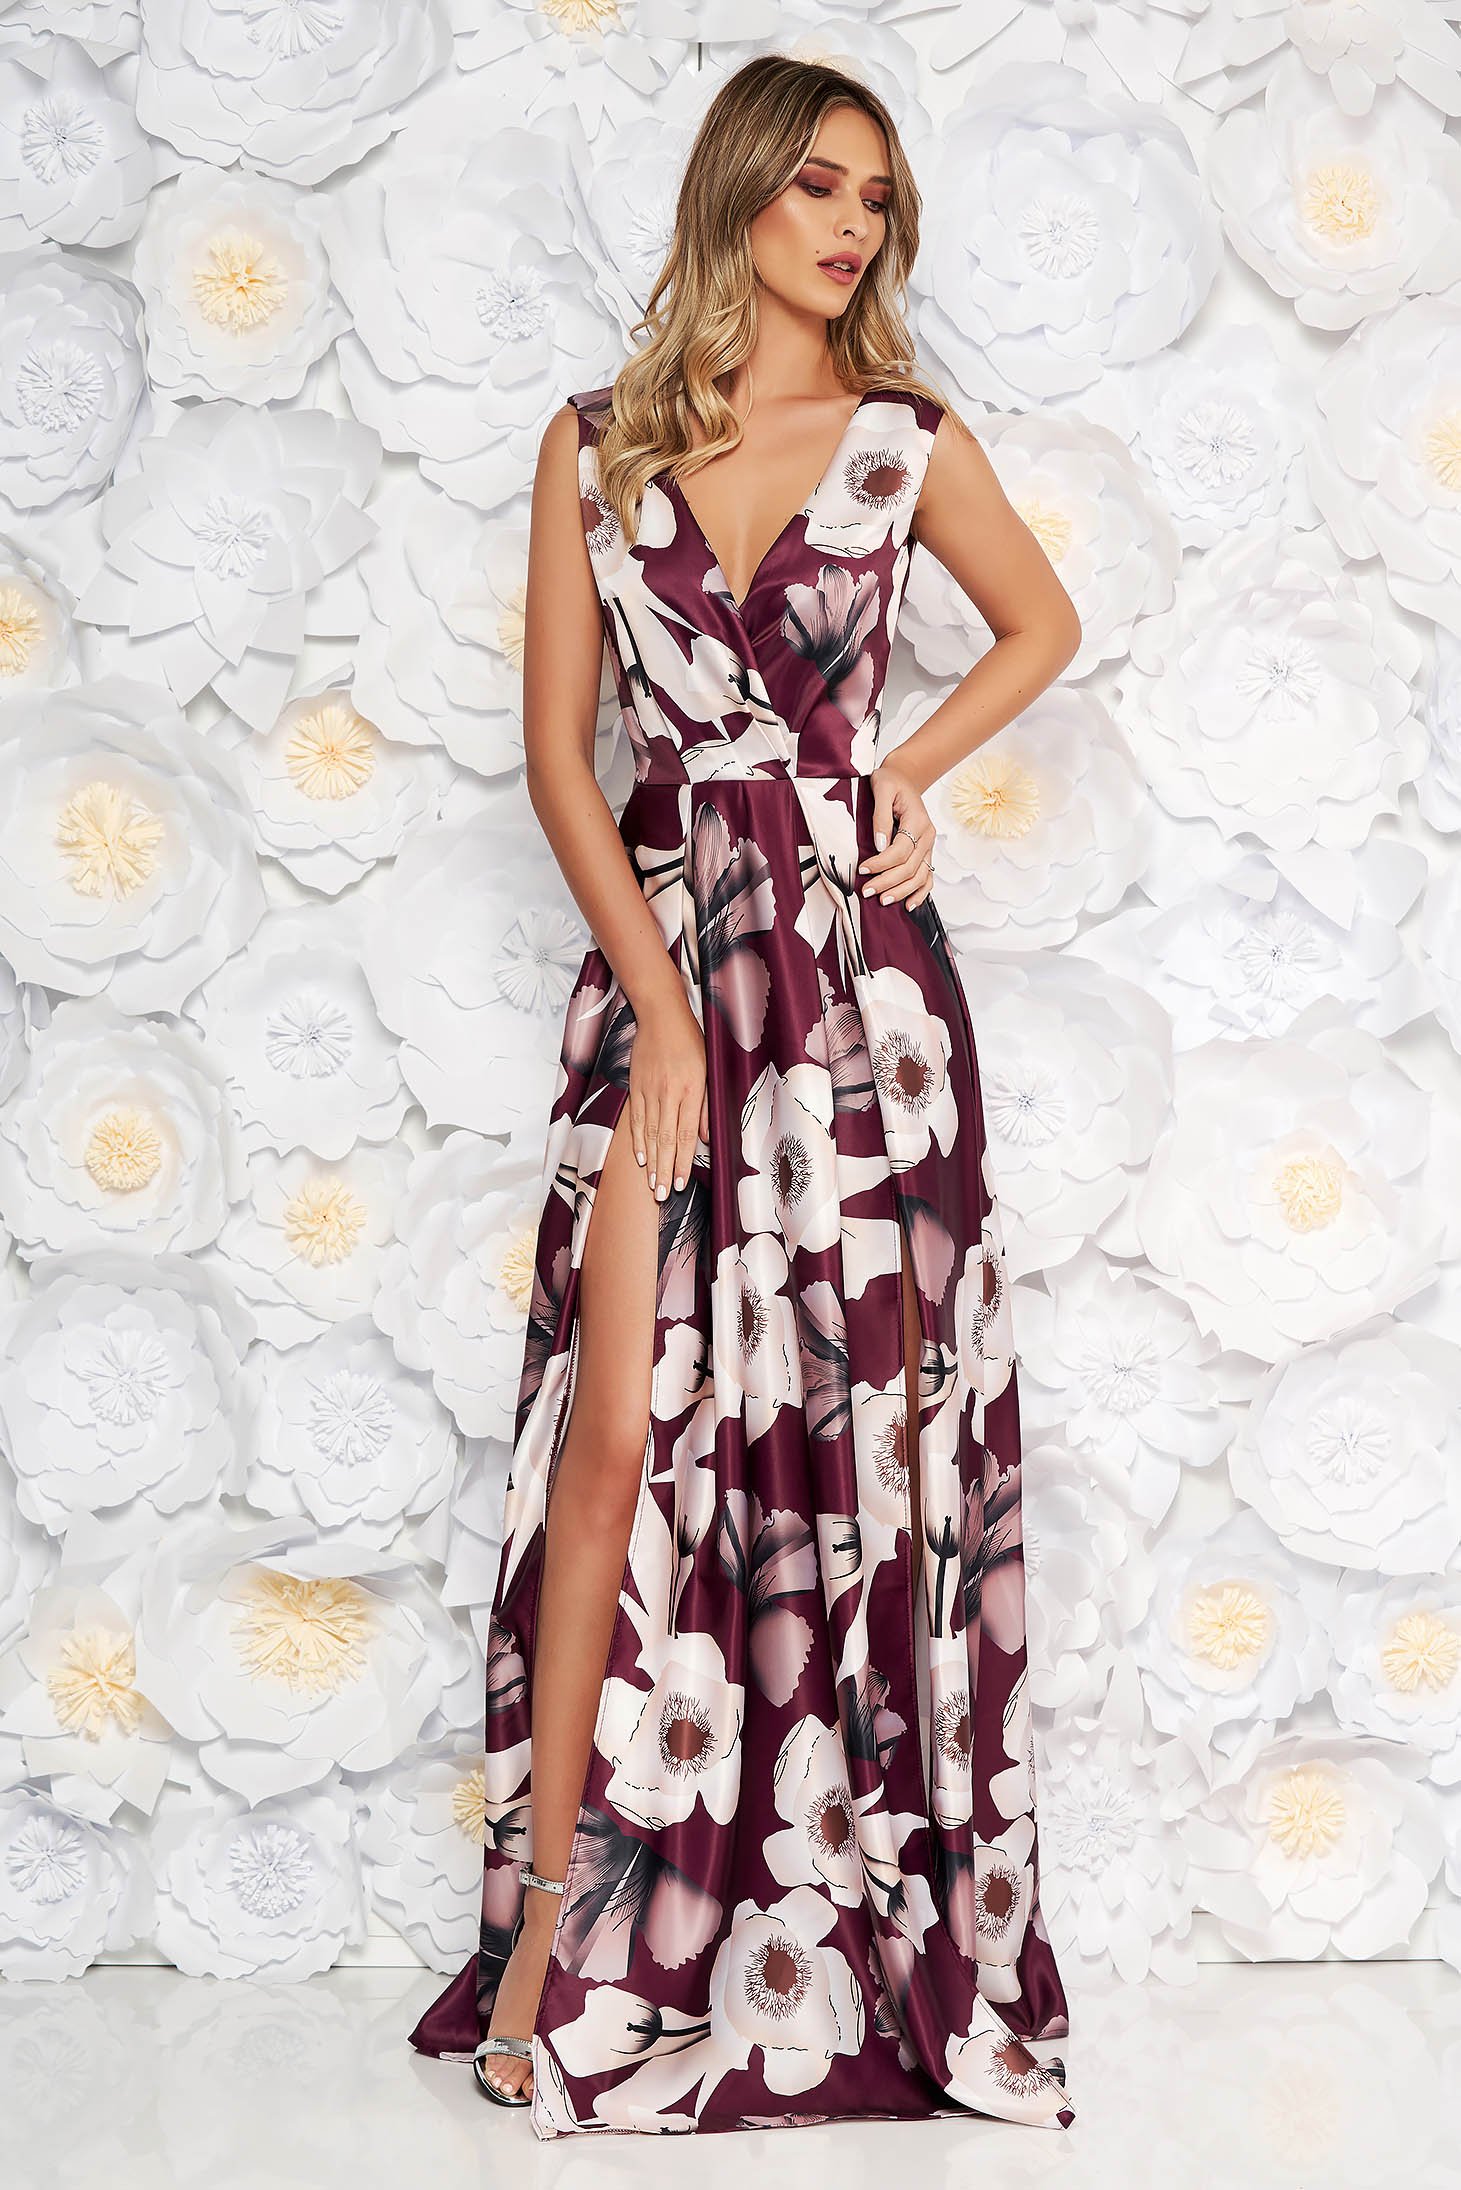 Artista burgundy occasional cloche dress with deep cleavage from satin fabric texture with floral print